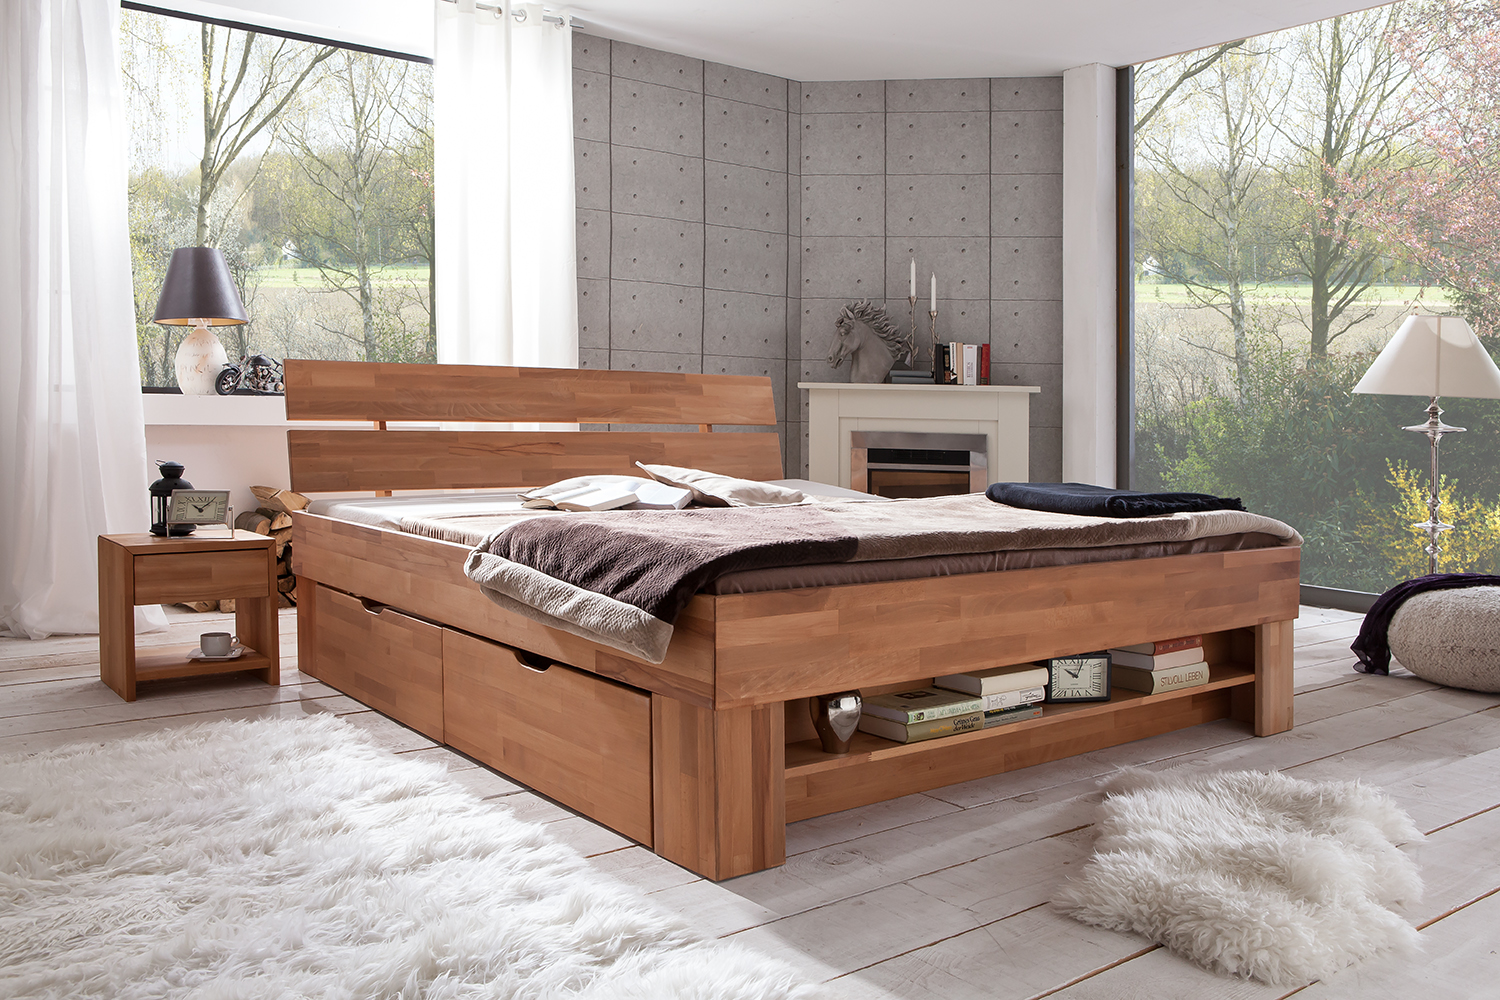 futonbett kernbuche massiv ge lt mit bettkasten 180x200 sofie elfo m bel. Black Bedroom Furniture Sets. Home Design Ideas